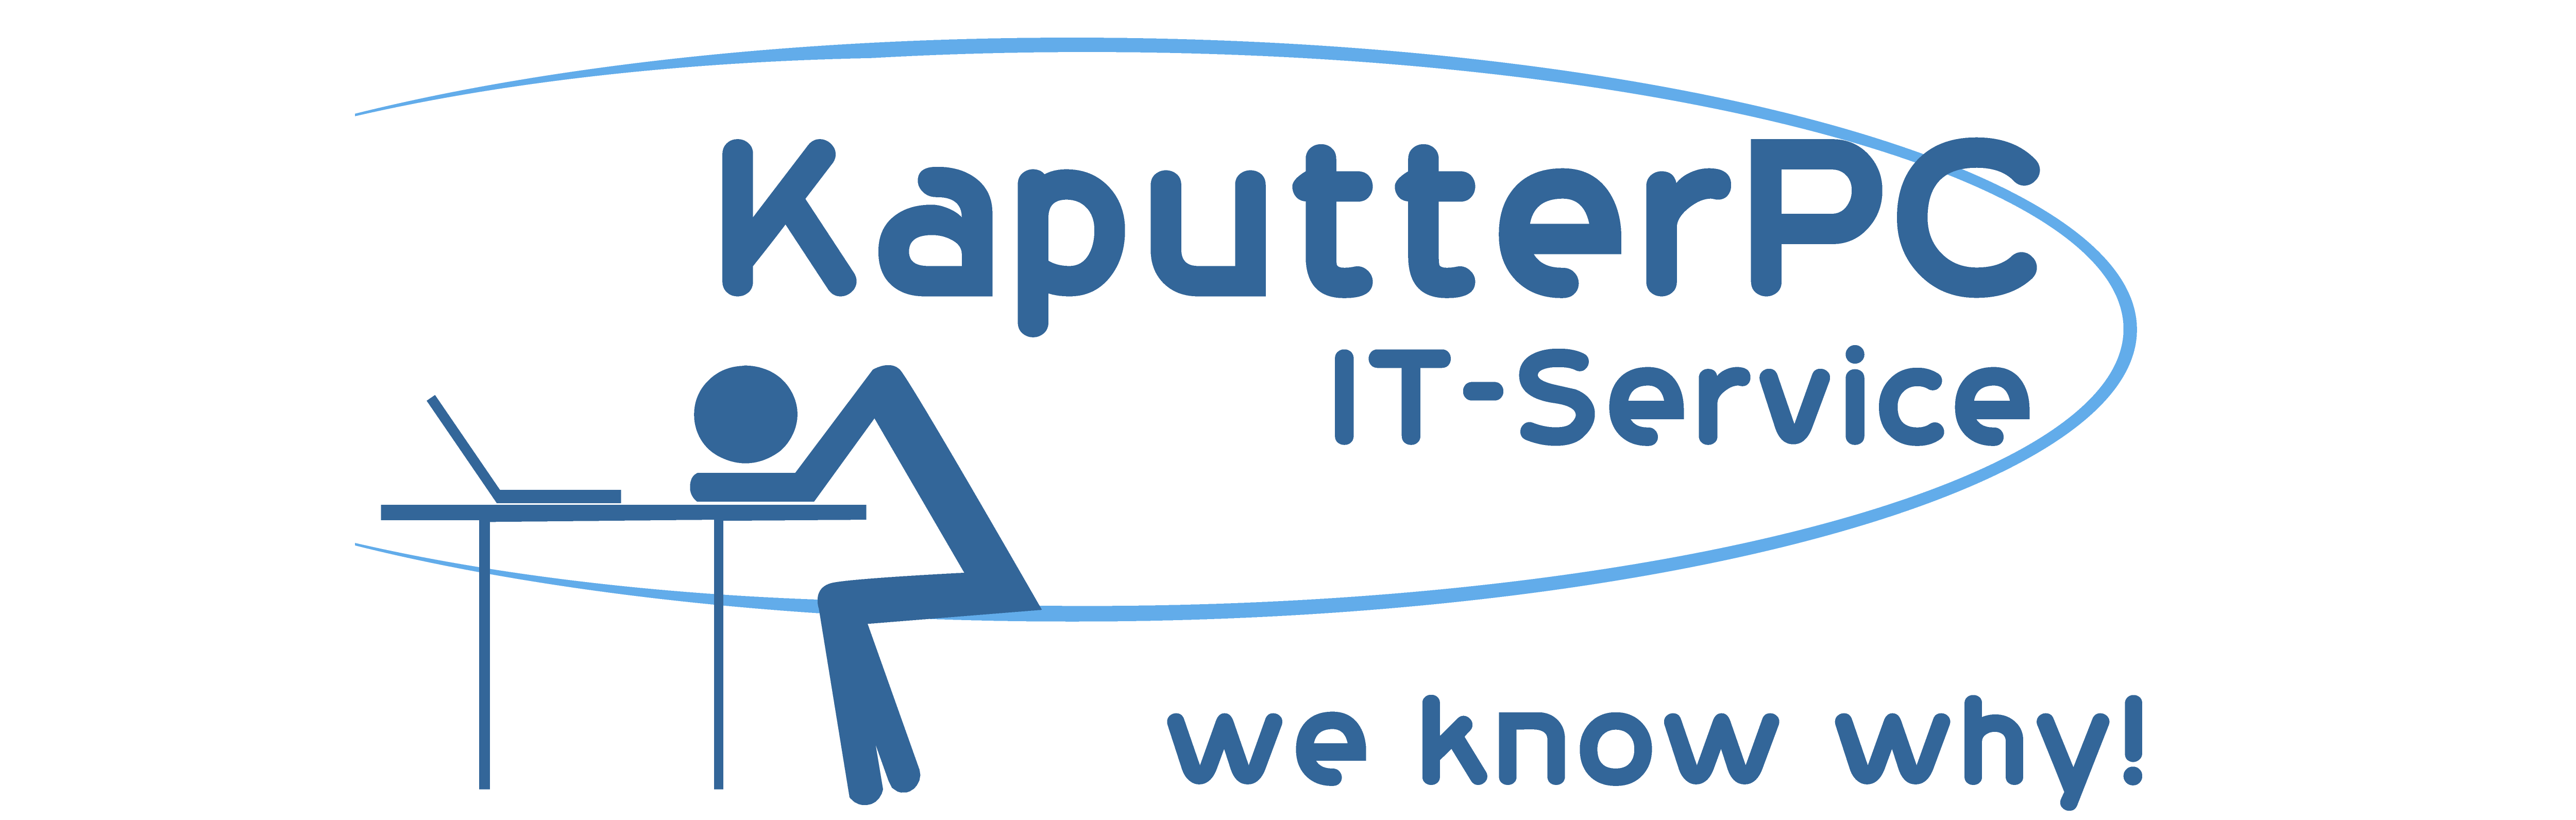 KaputterPC IT-Service Helpdesk